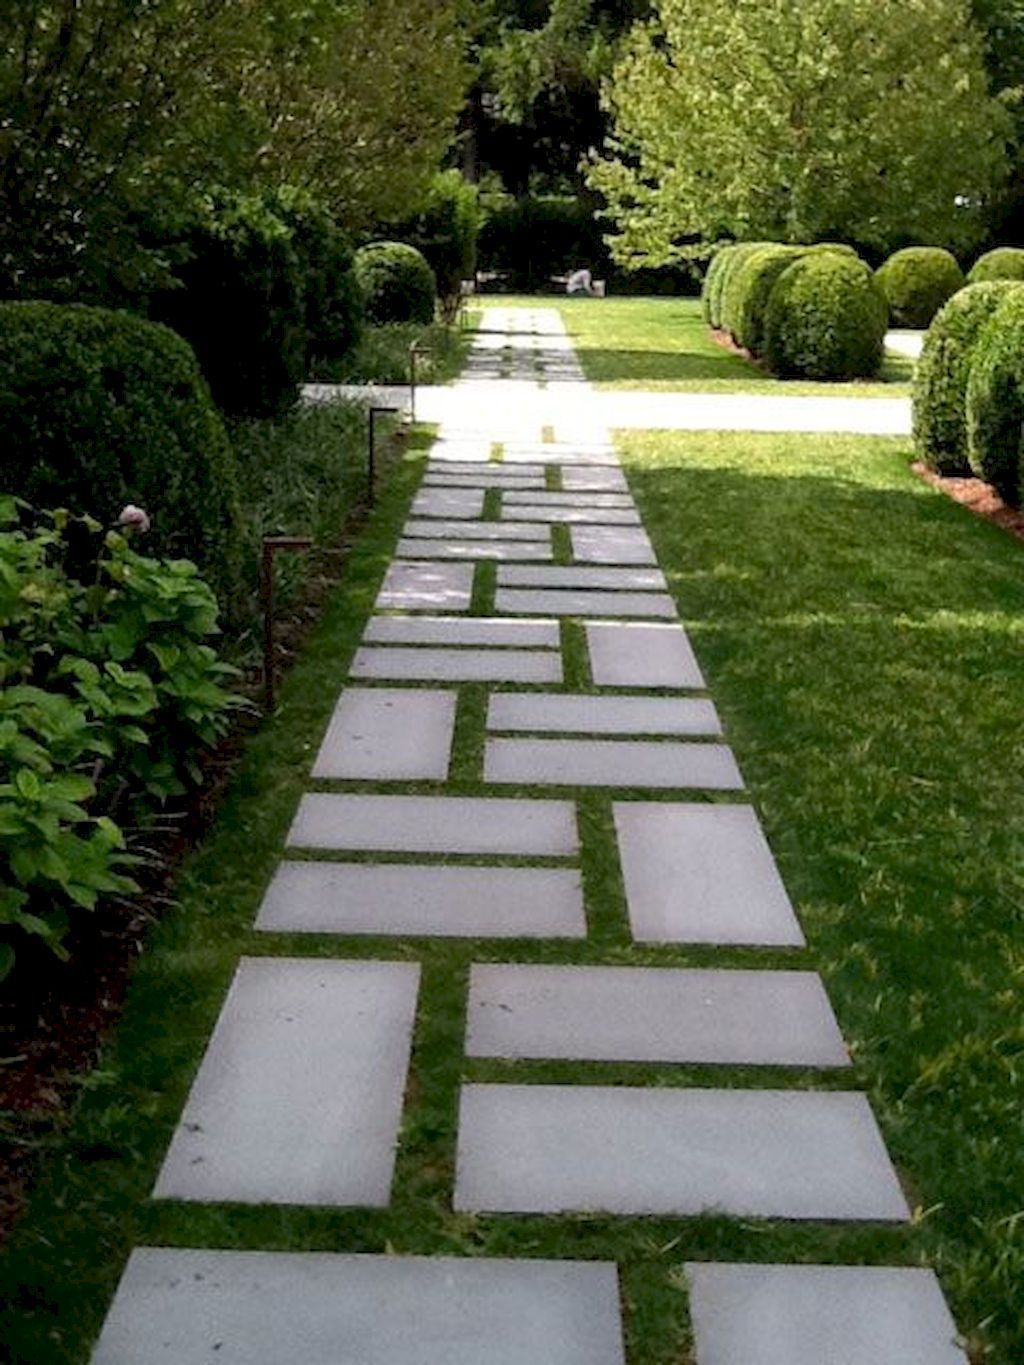 Stunning Stepping Stones Pathway Design Ideas 22